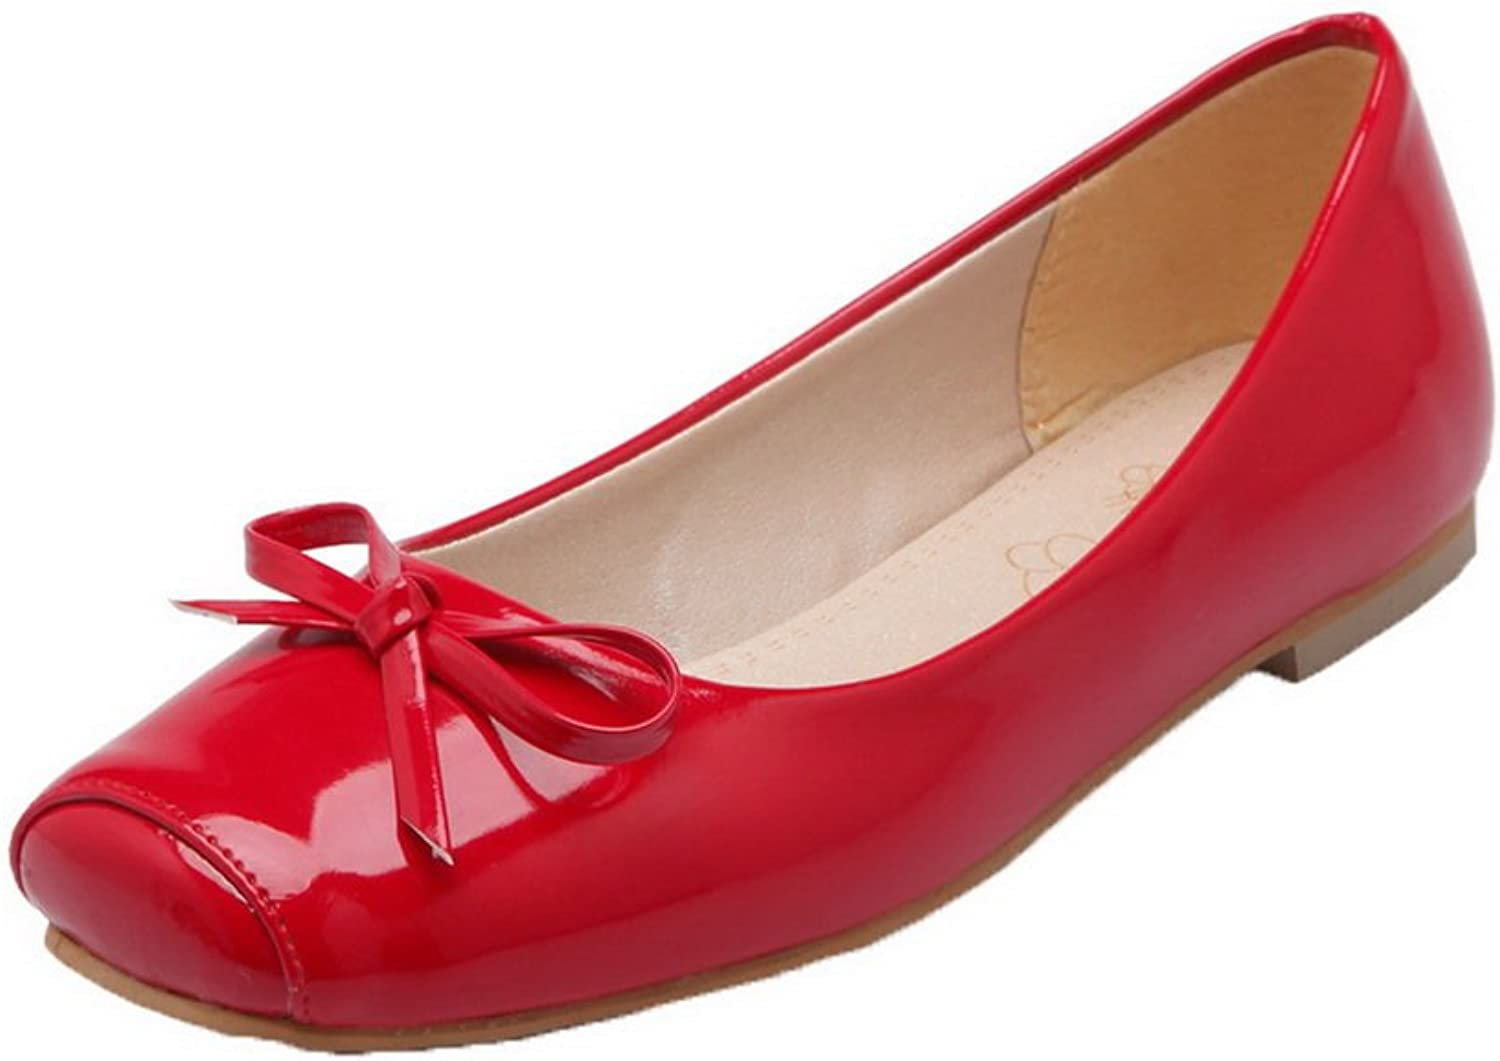 WeiPoot Women's Closed-Toe Pull-On Patent Leather Solid Low-Heels Pumps-shoes